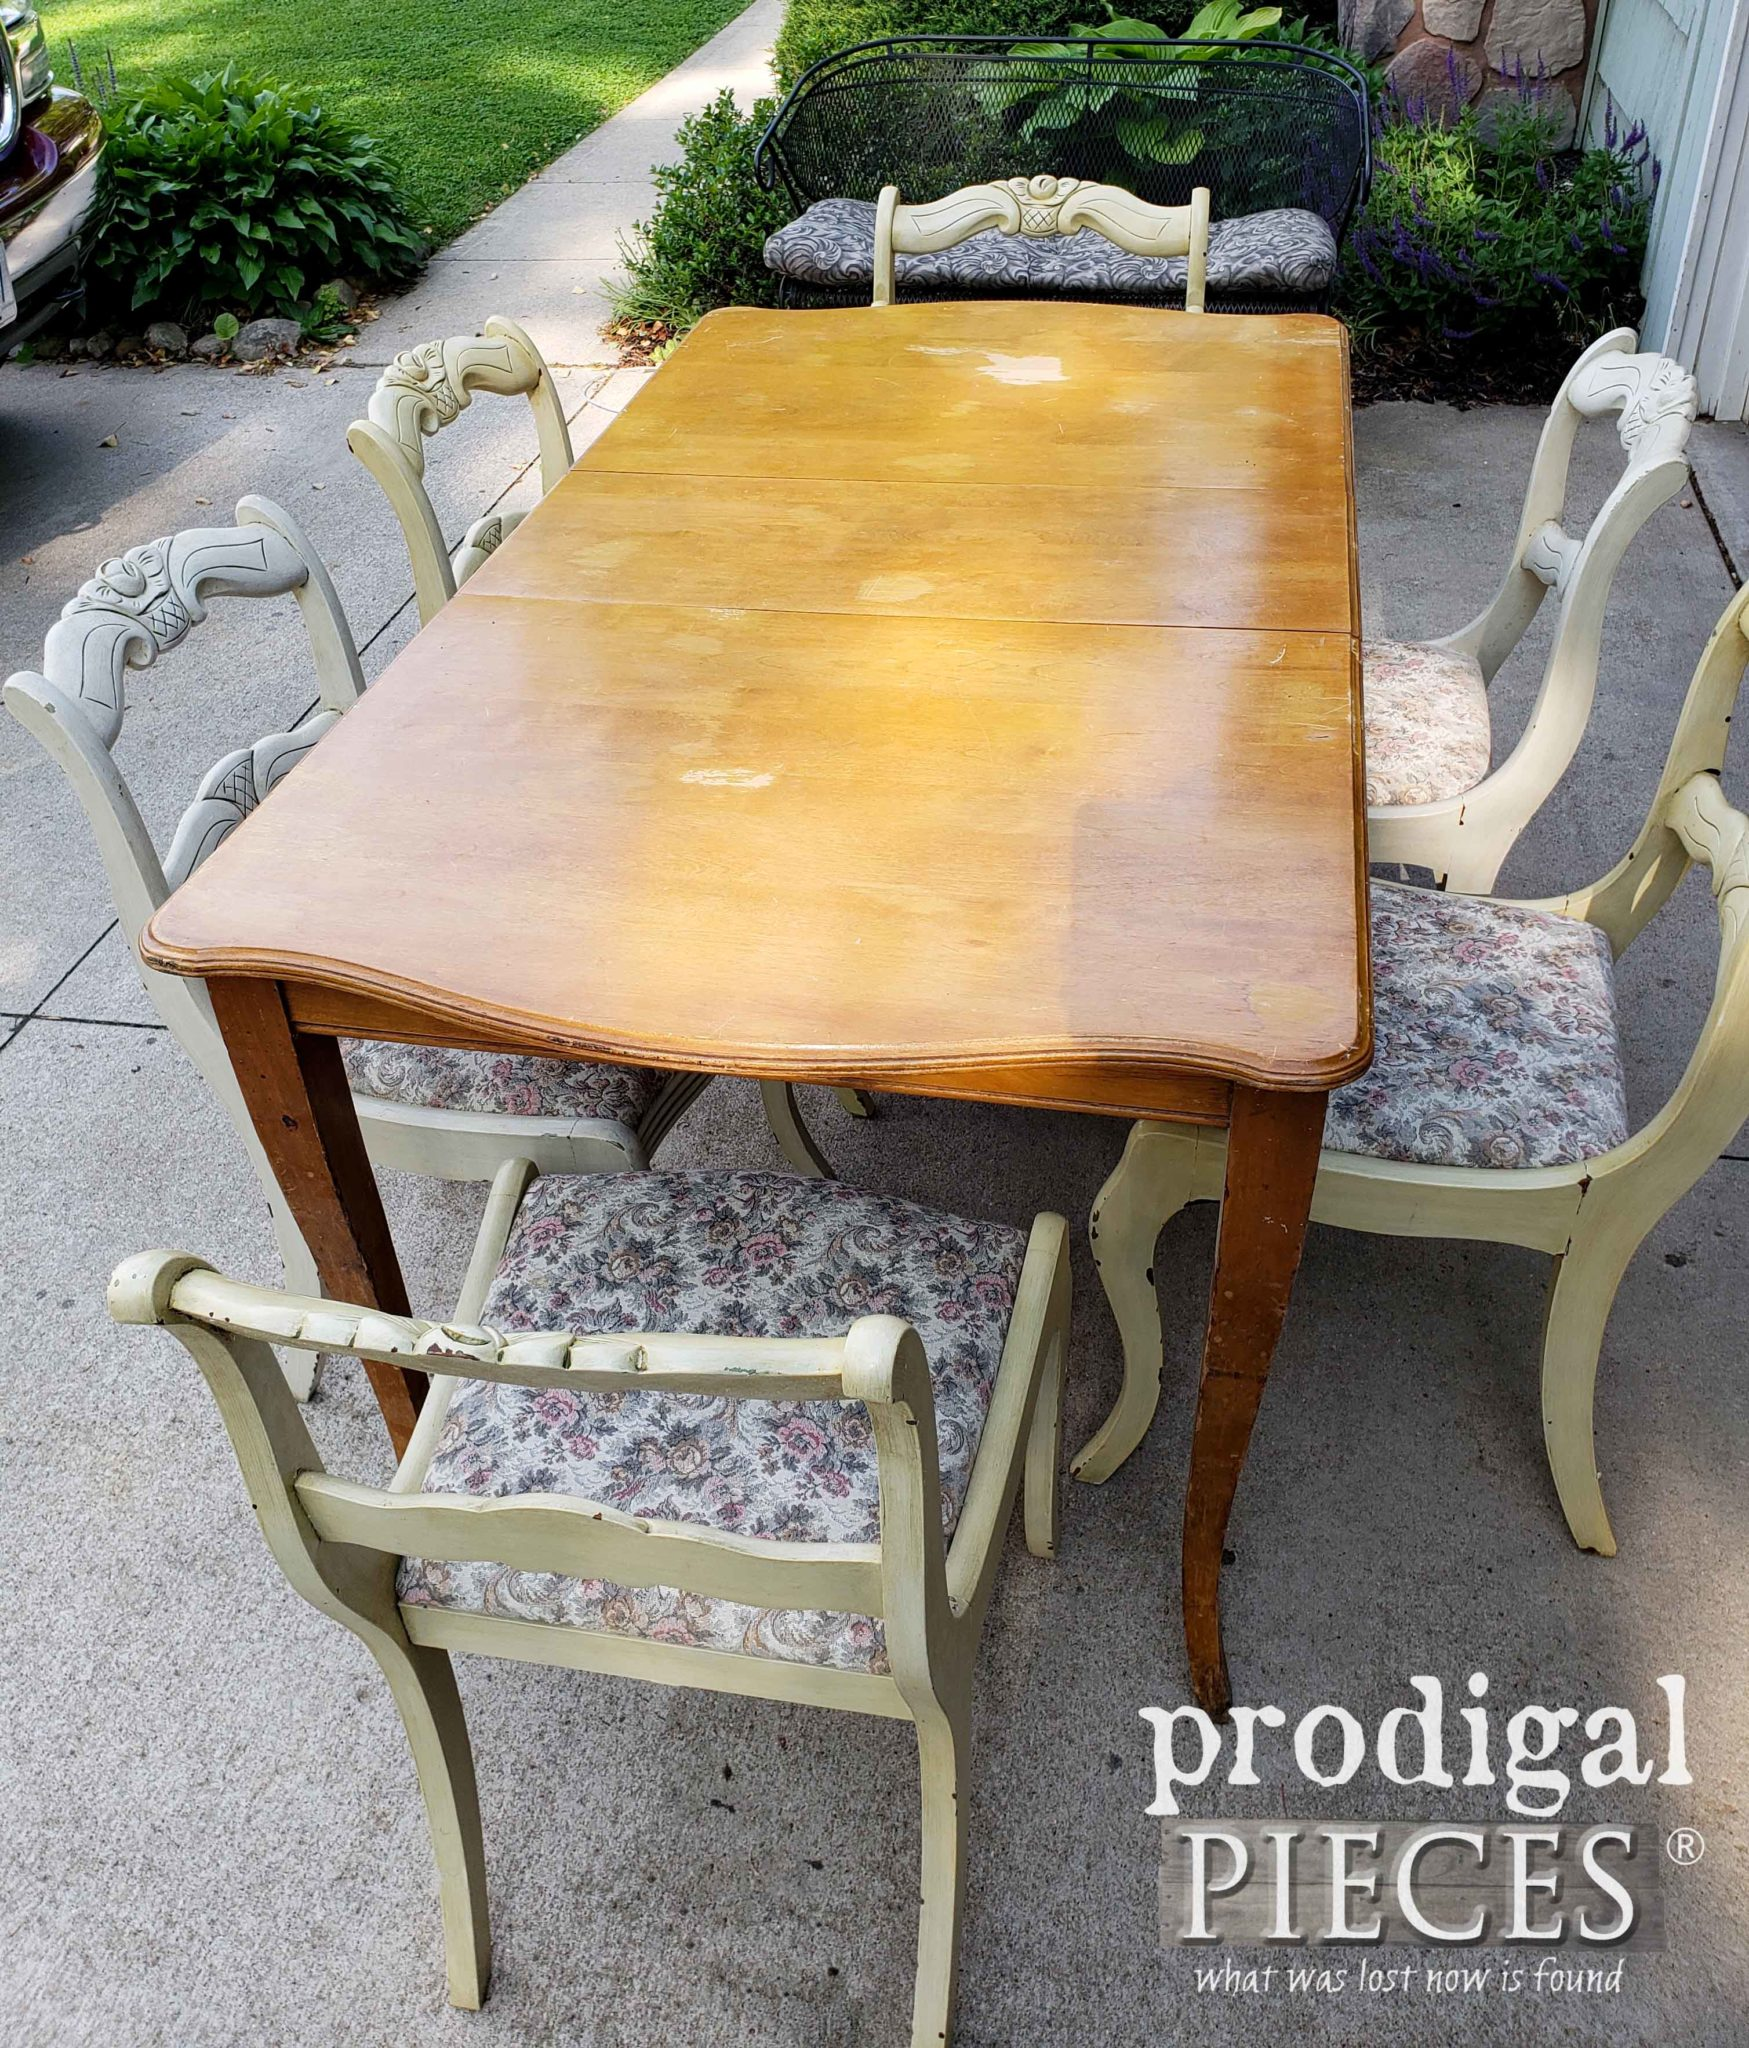 Vintage Extension Dining Table Before Makeover by Prodigal Pieces | prodigalpieces.com